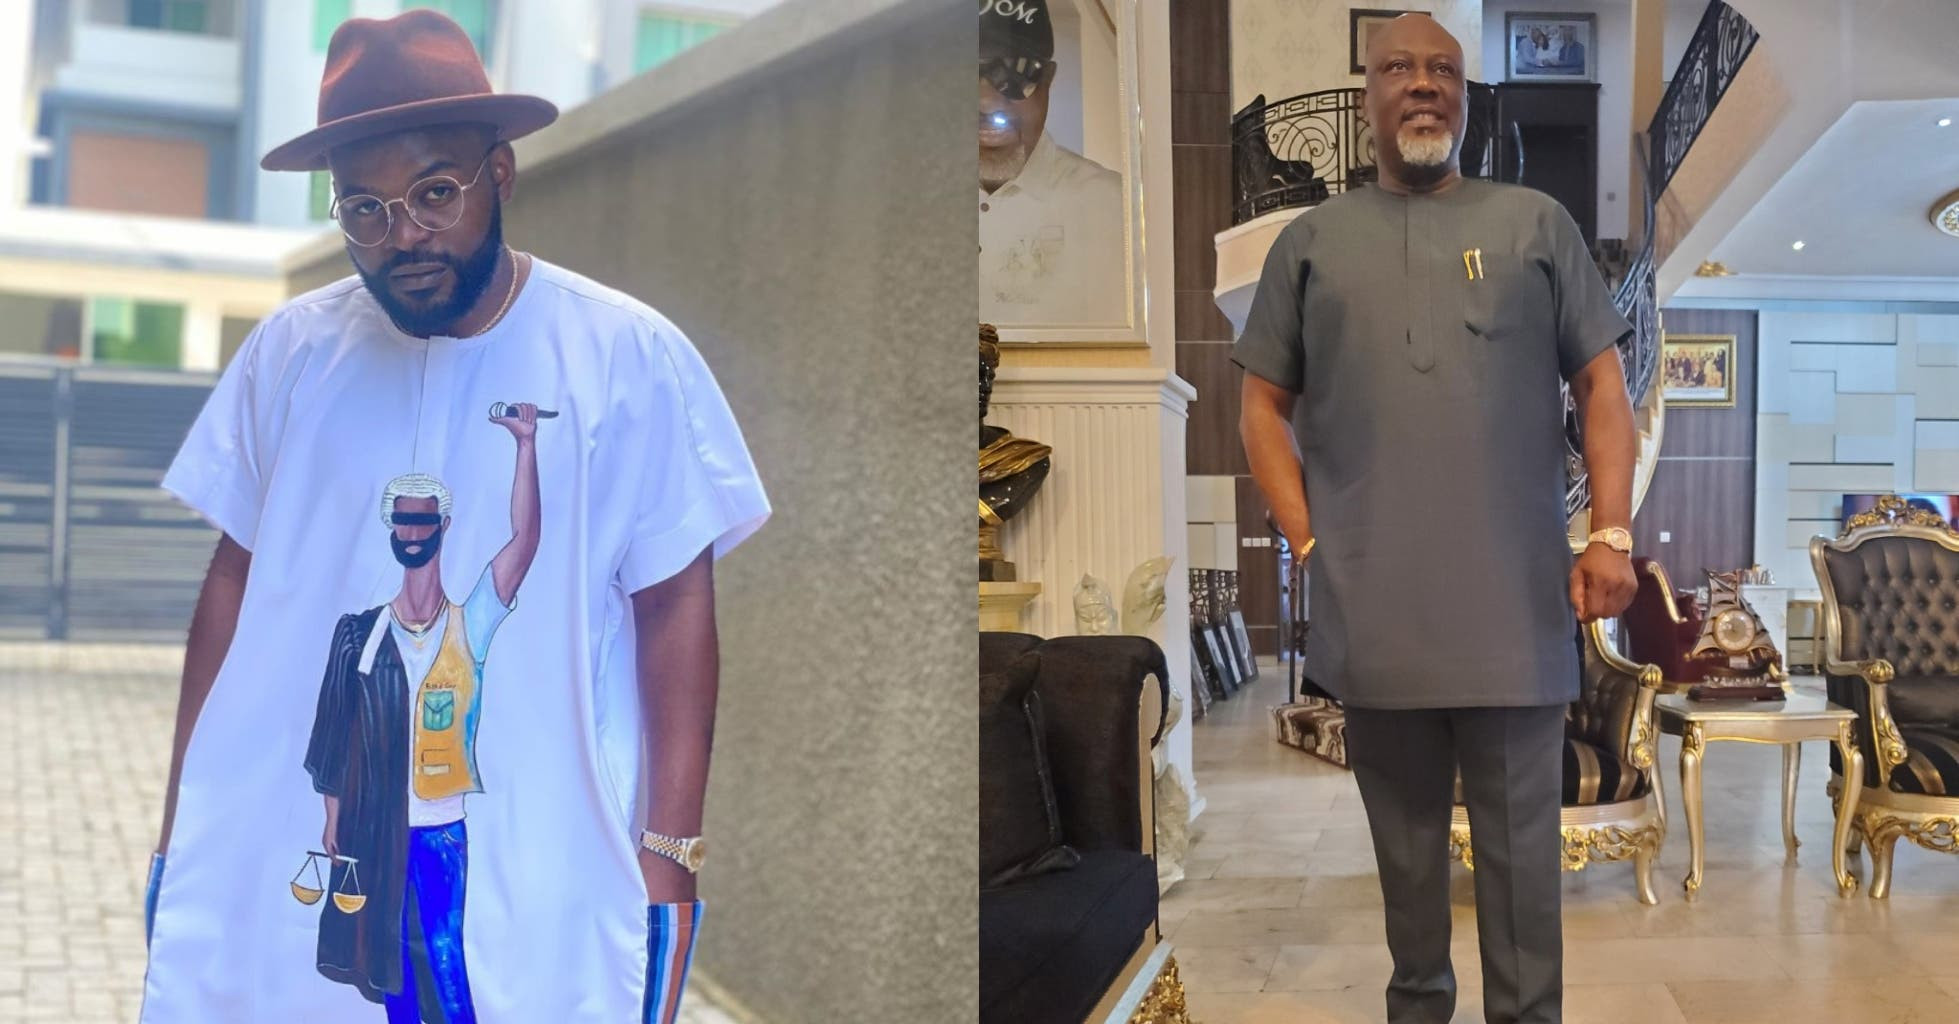 'We go soon face una matter' - Falz slams Dino Melaye over solidarity with #EndSARS protesters lindaikejisblog